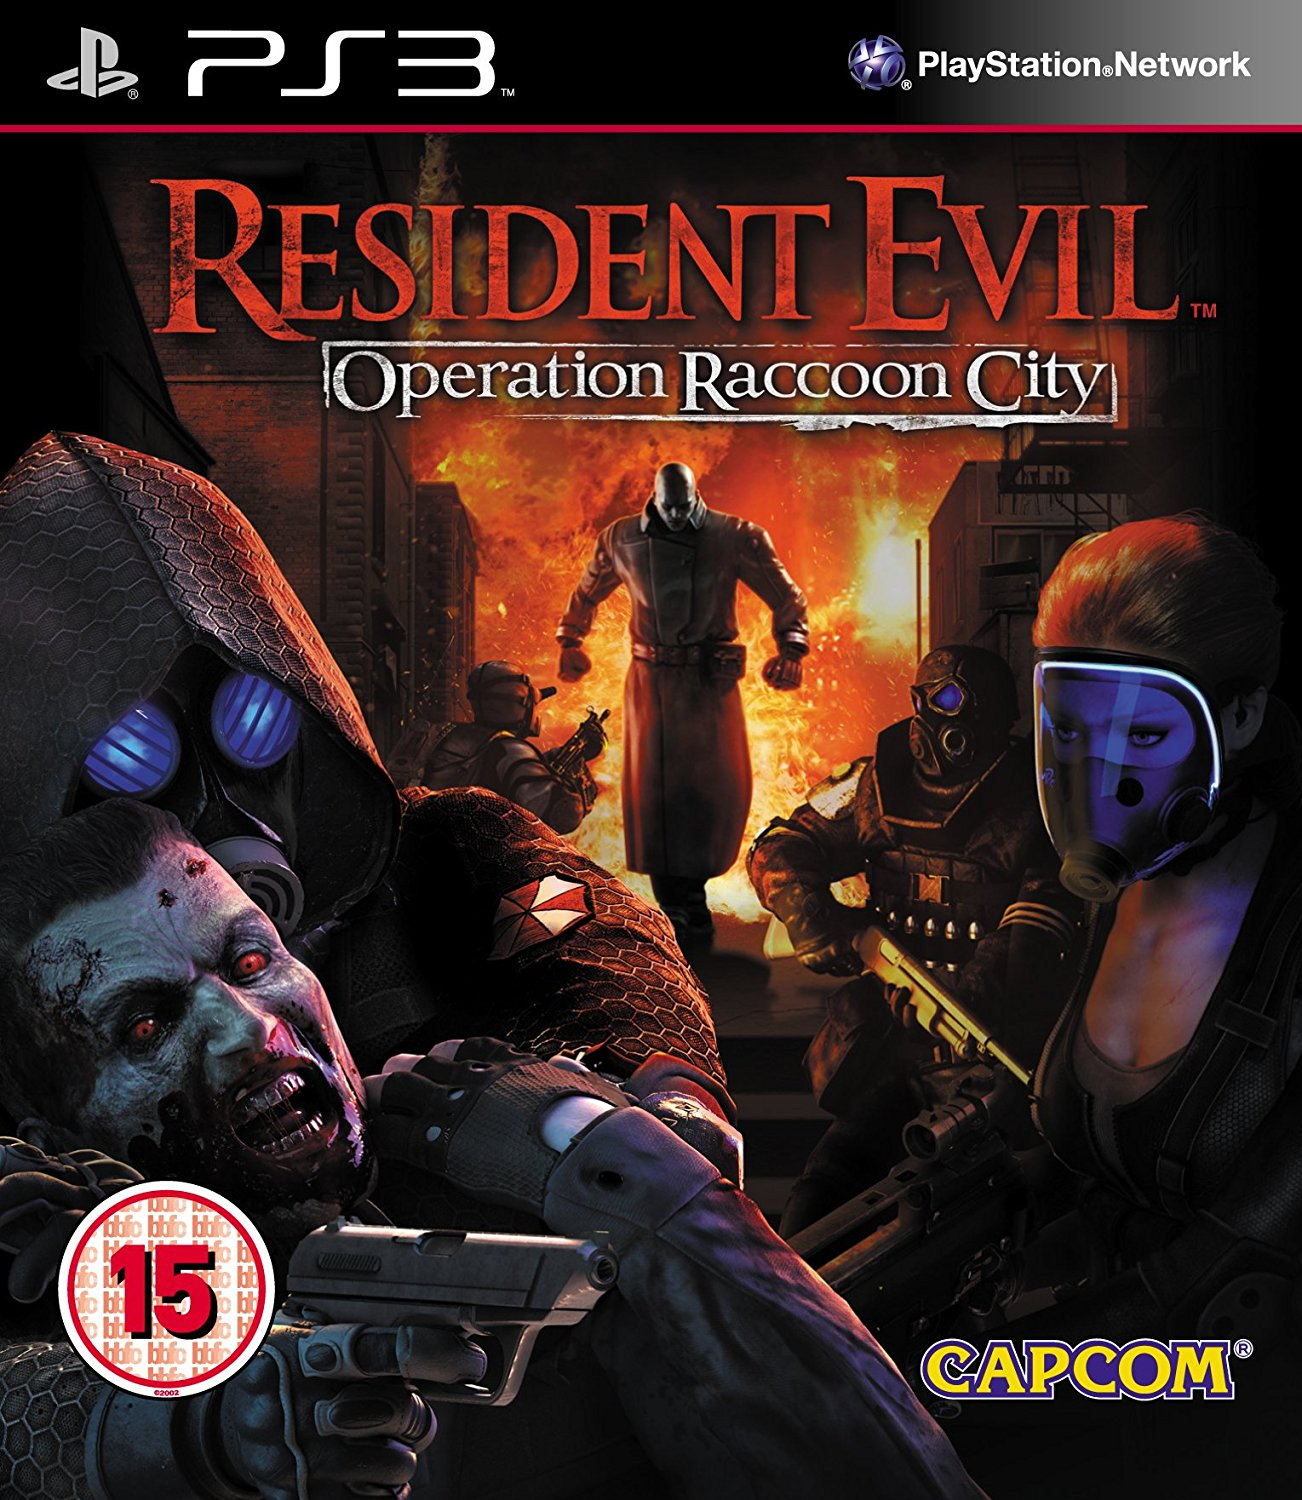 PS3 Resident Evil Operation Raccoon City - jen hra